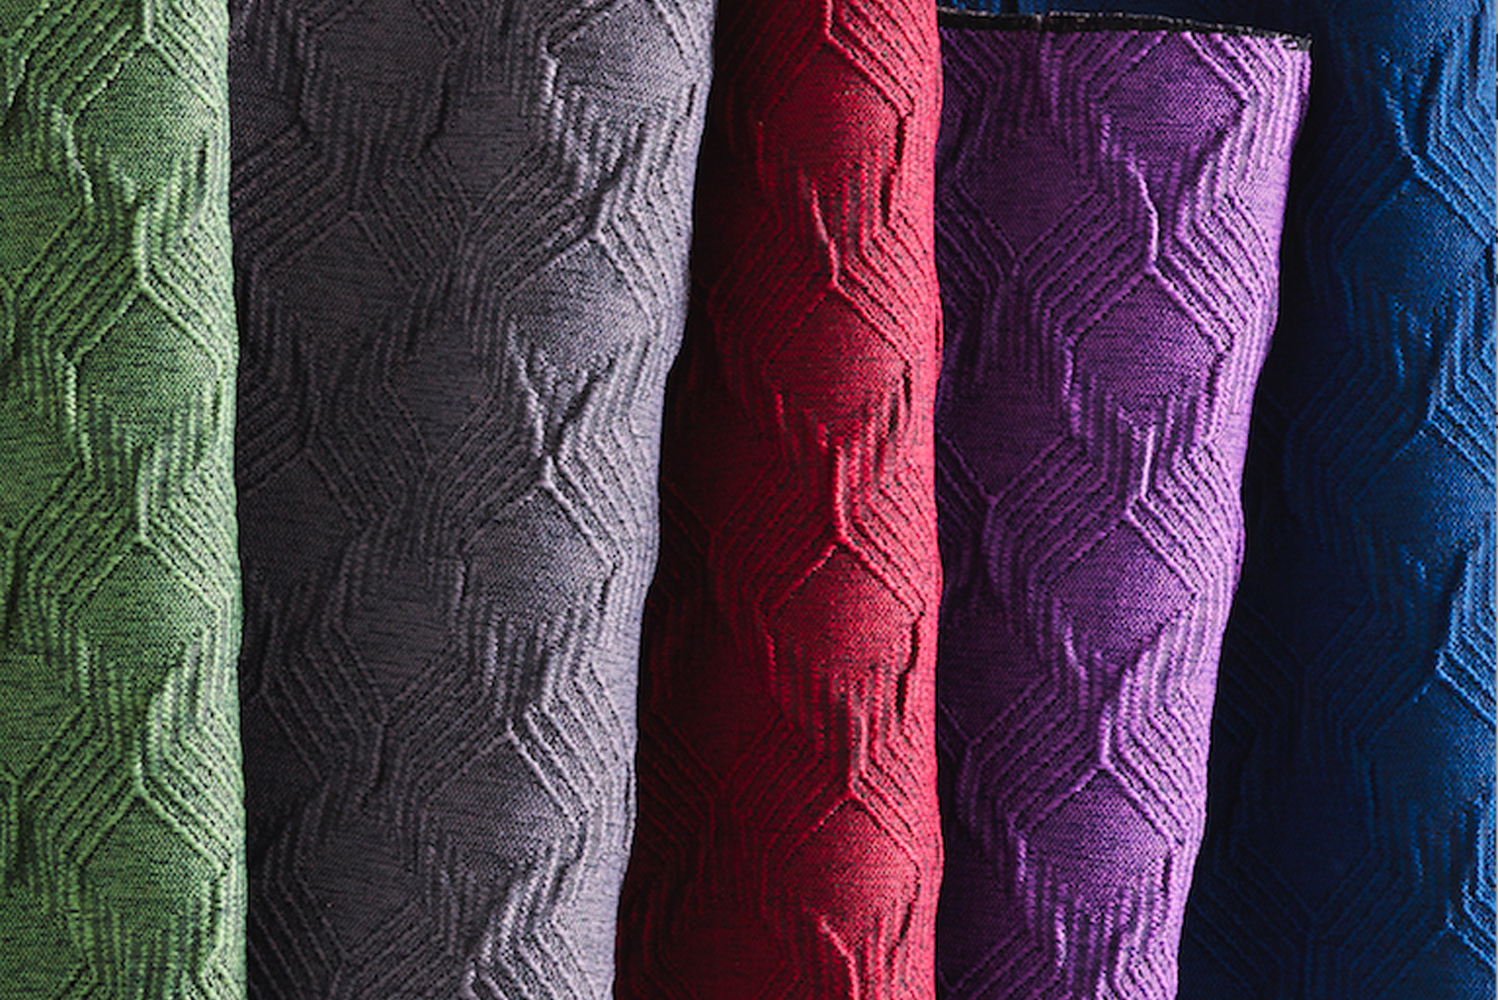 The collection combines texture and geometric patterns for wide-ranging looks and uses within commercial spaces.